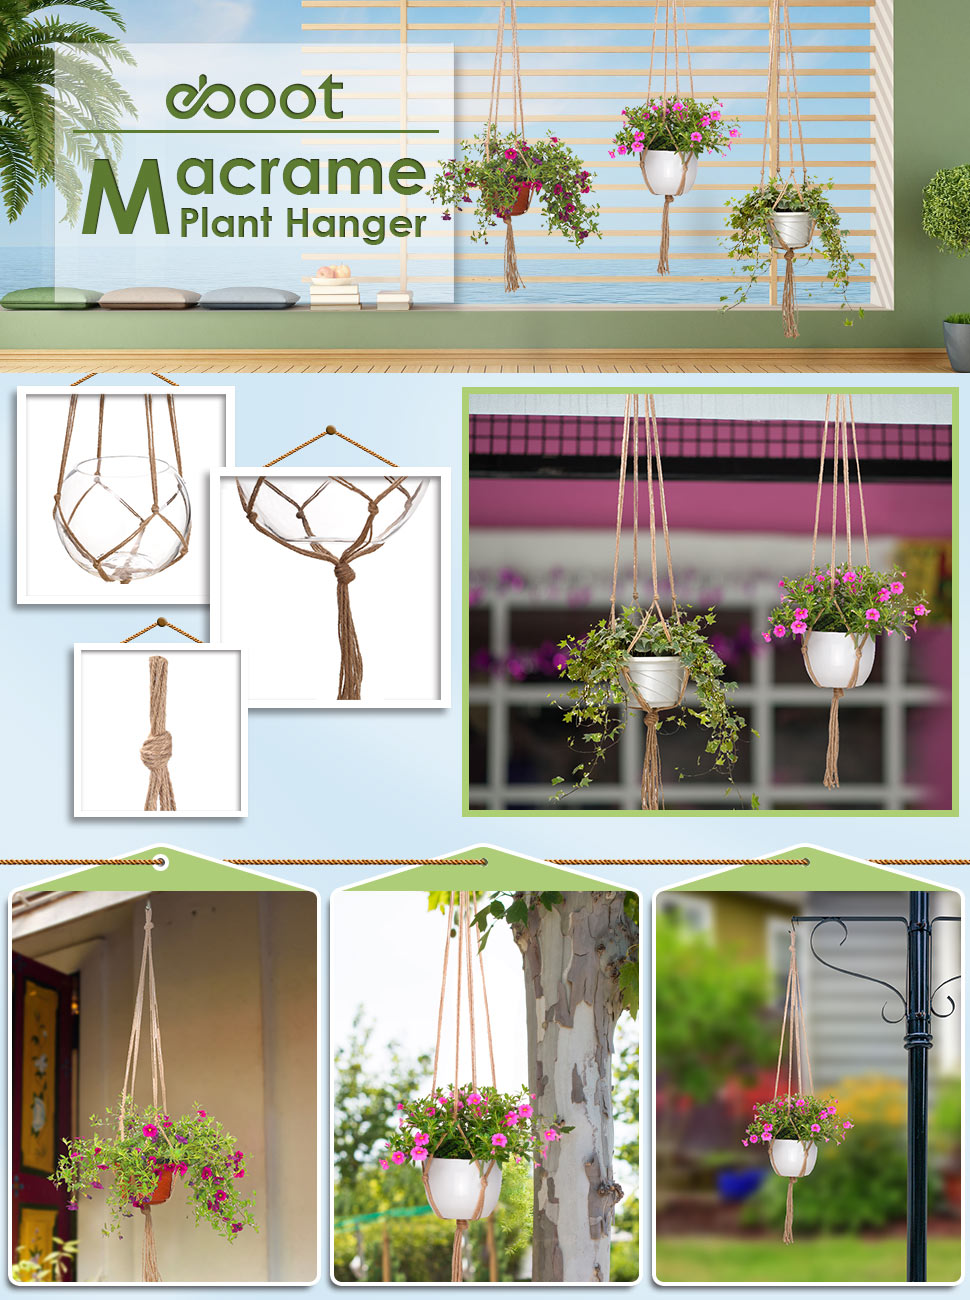 Widely Applied In Any Indoor And Outdoor Use.Make The Flower Pot More  Fabulous With These Vintage Style Plant Hanger When Hanging At The  Ceiling,balcony ...